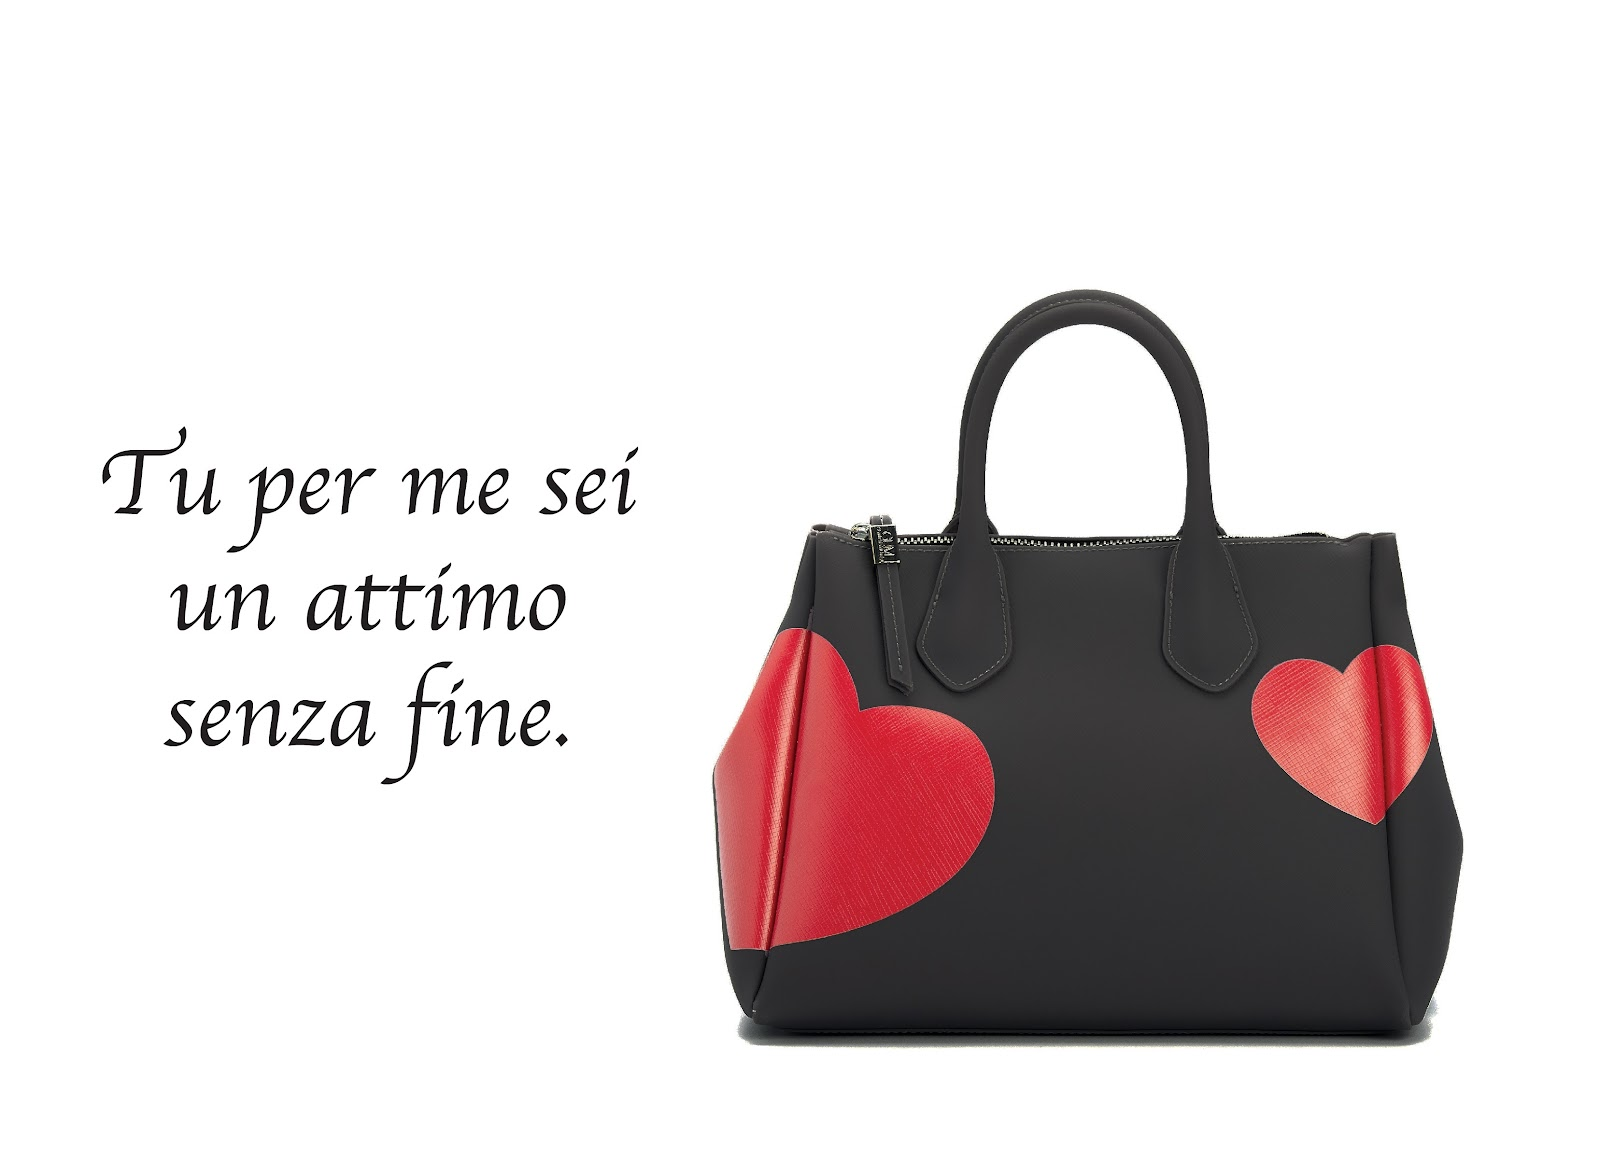 san valentino love amore cuore idee regalo per lei cosa regalare fashion moda bag heart borsa gianni chiarini design 12 The Brian&Barry Building Milano